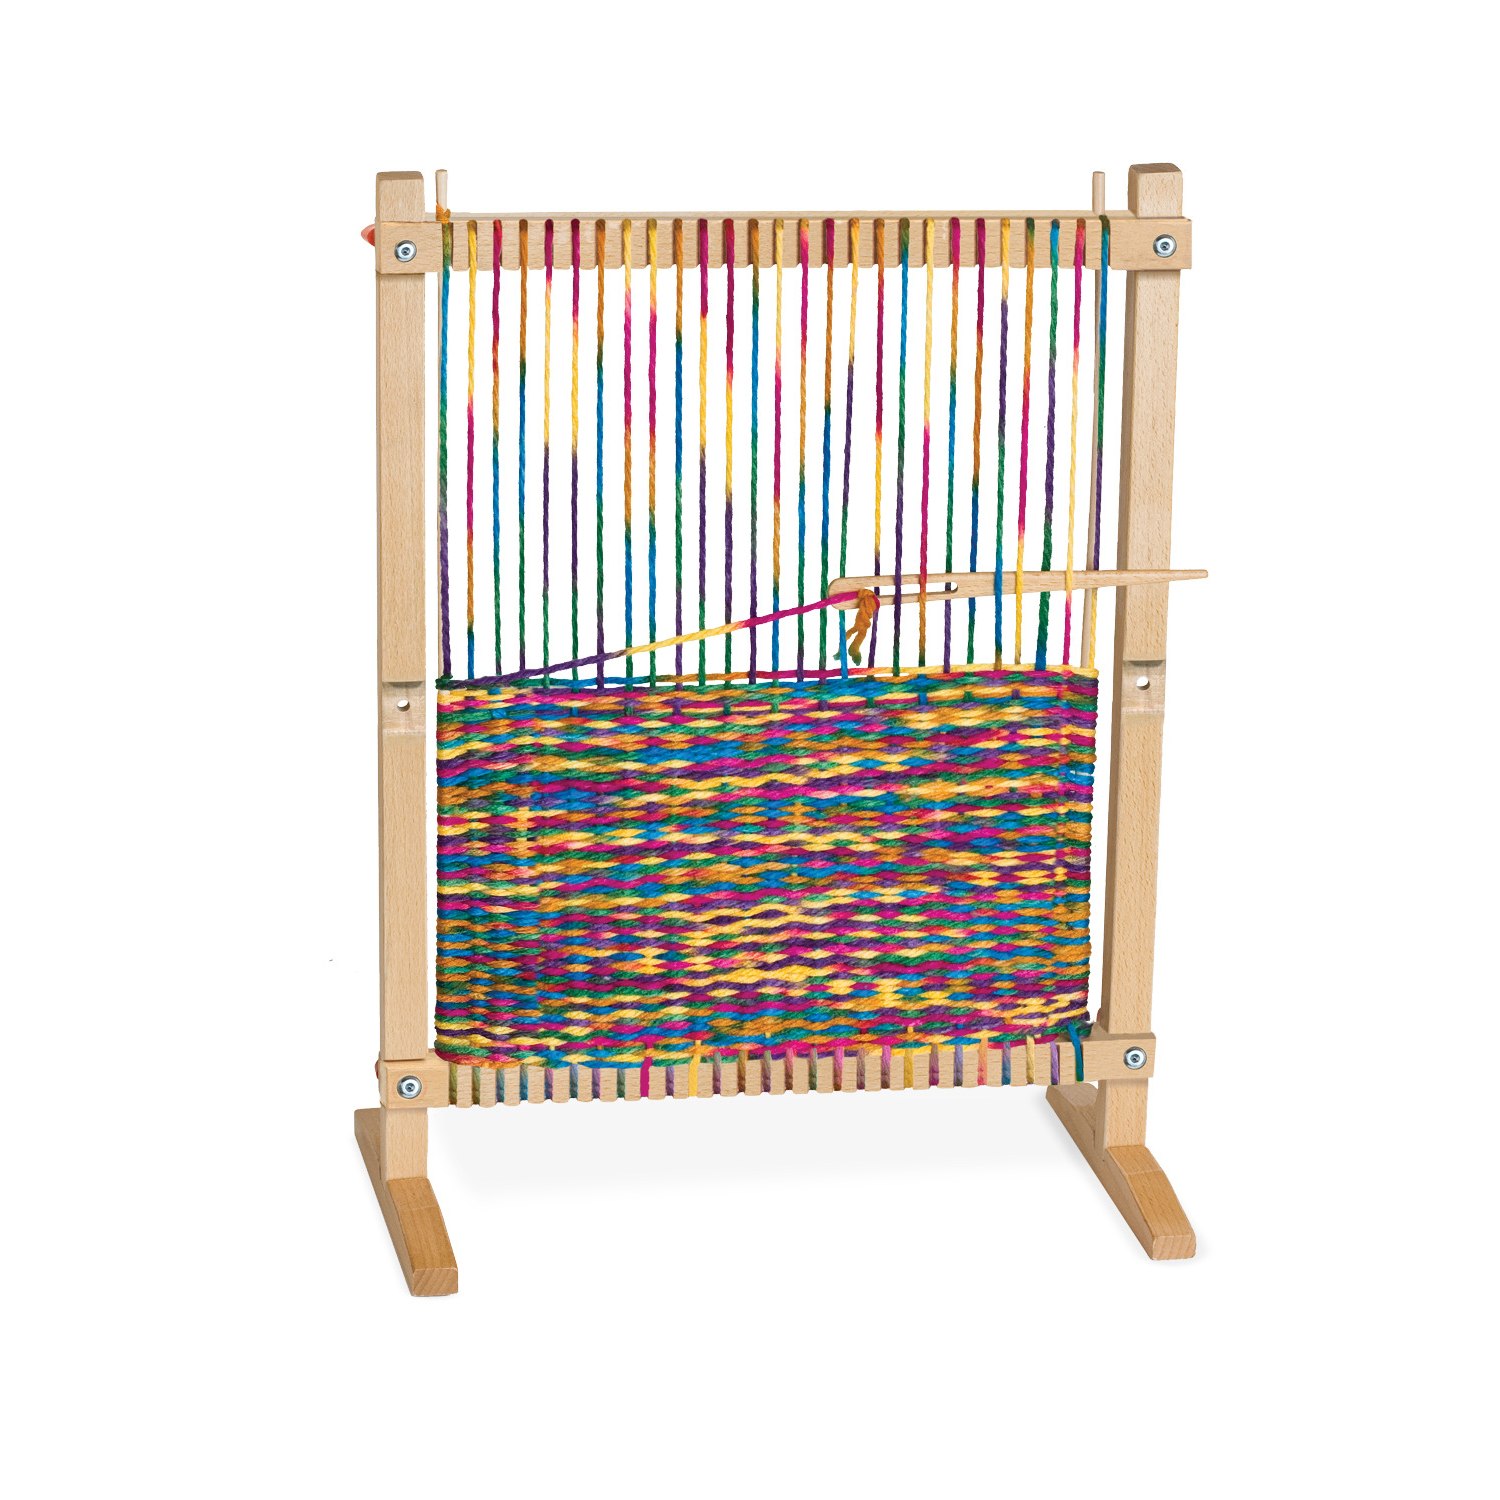 Wooden Multi-Craft Weaving Loom, Arts & Crafts, Extra-Large Frame, Develops Creativity and Motor Skills, 16.5